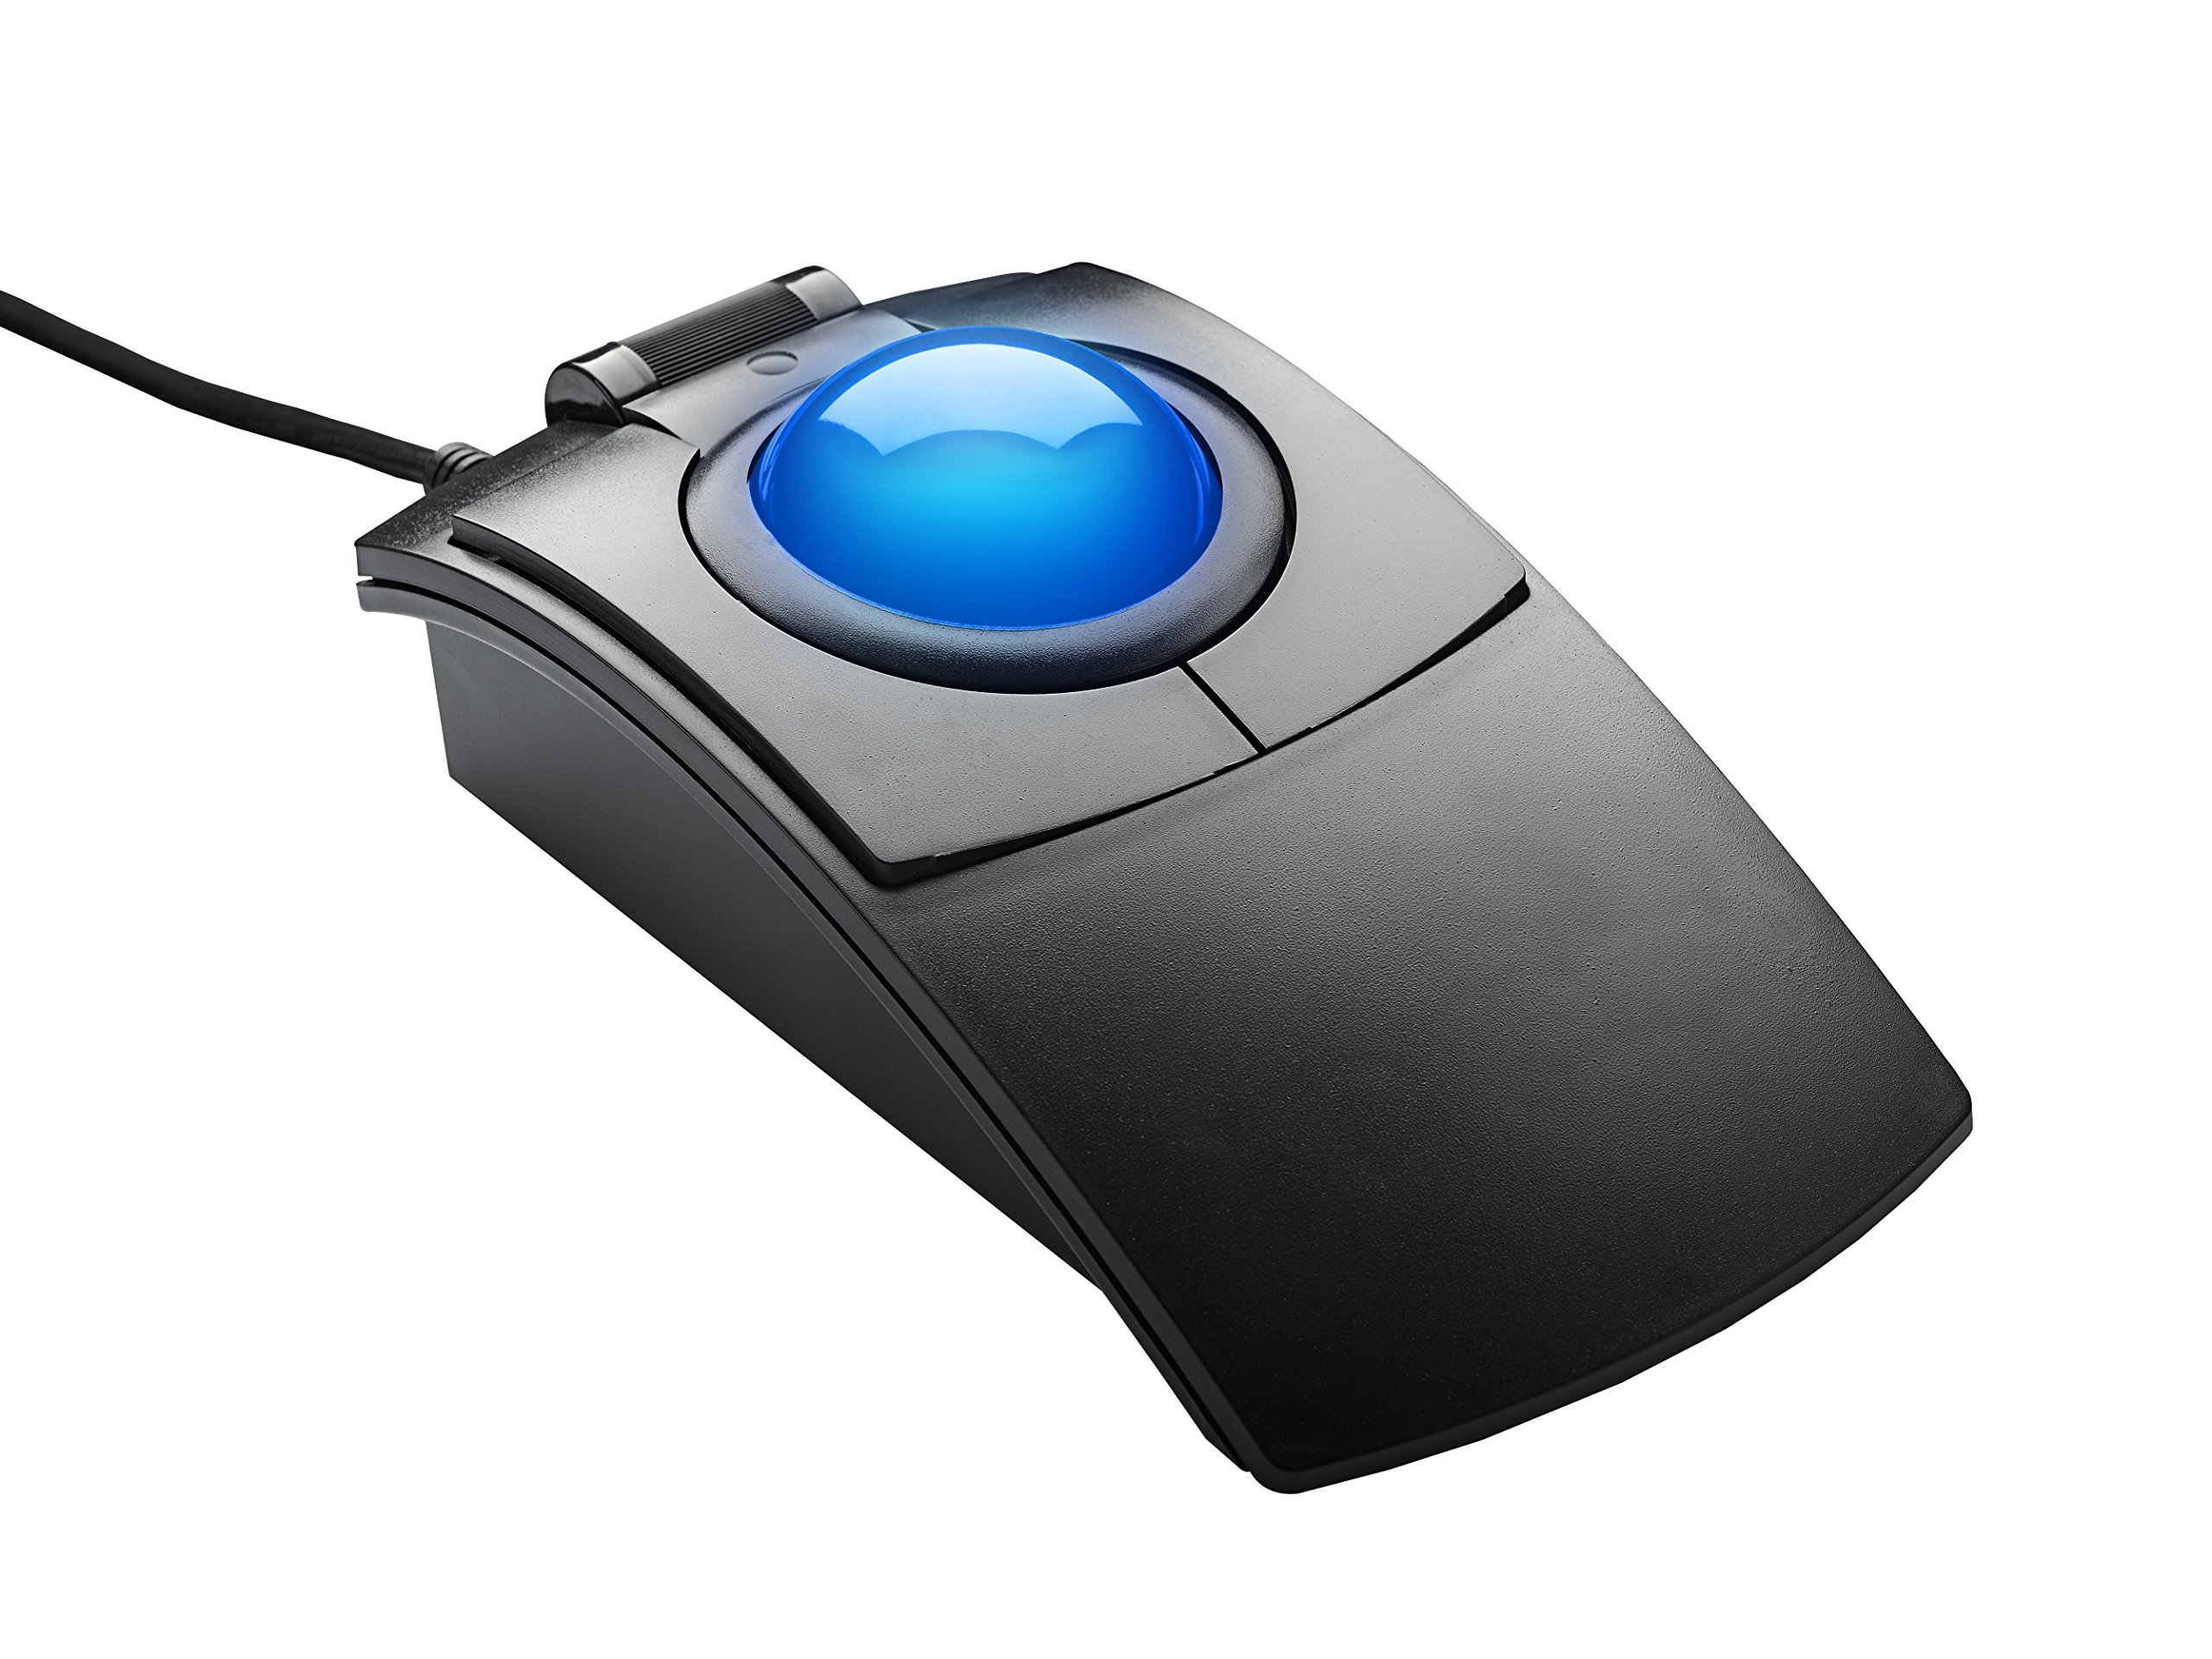 CST2545-5W(GL) (L-Trac Glow) USB Wired Ambidextrous High Performance Laser Ergonomic 5-Button Backlit Trackball (Black) - Made in the USA